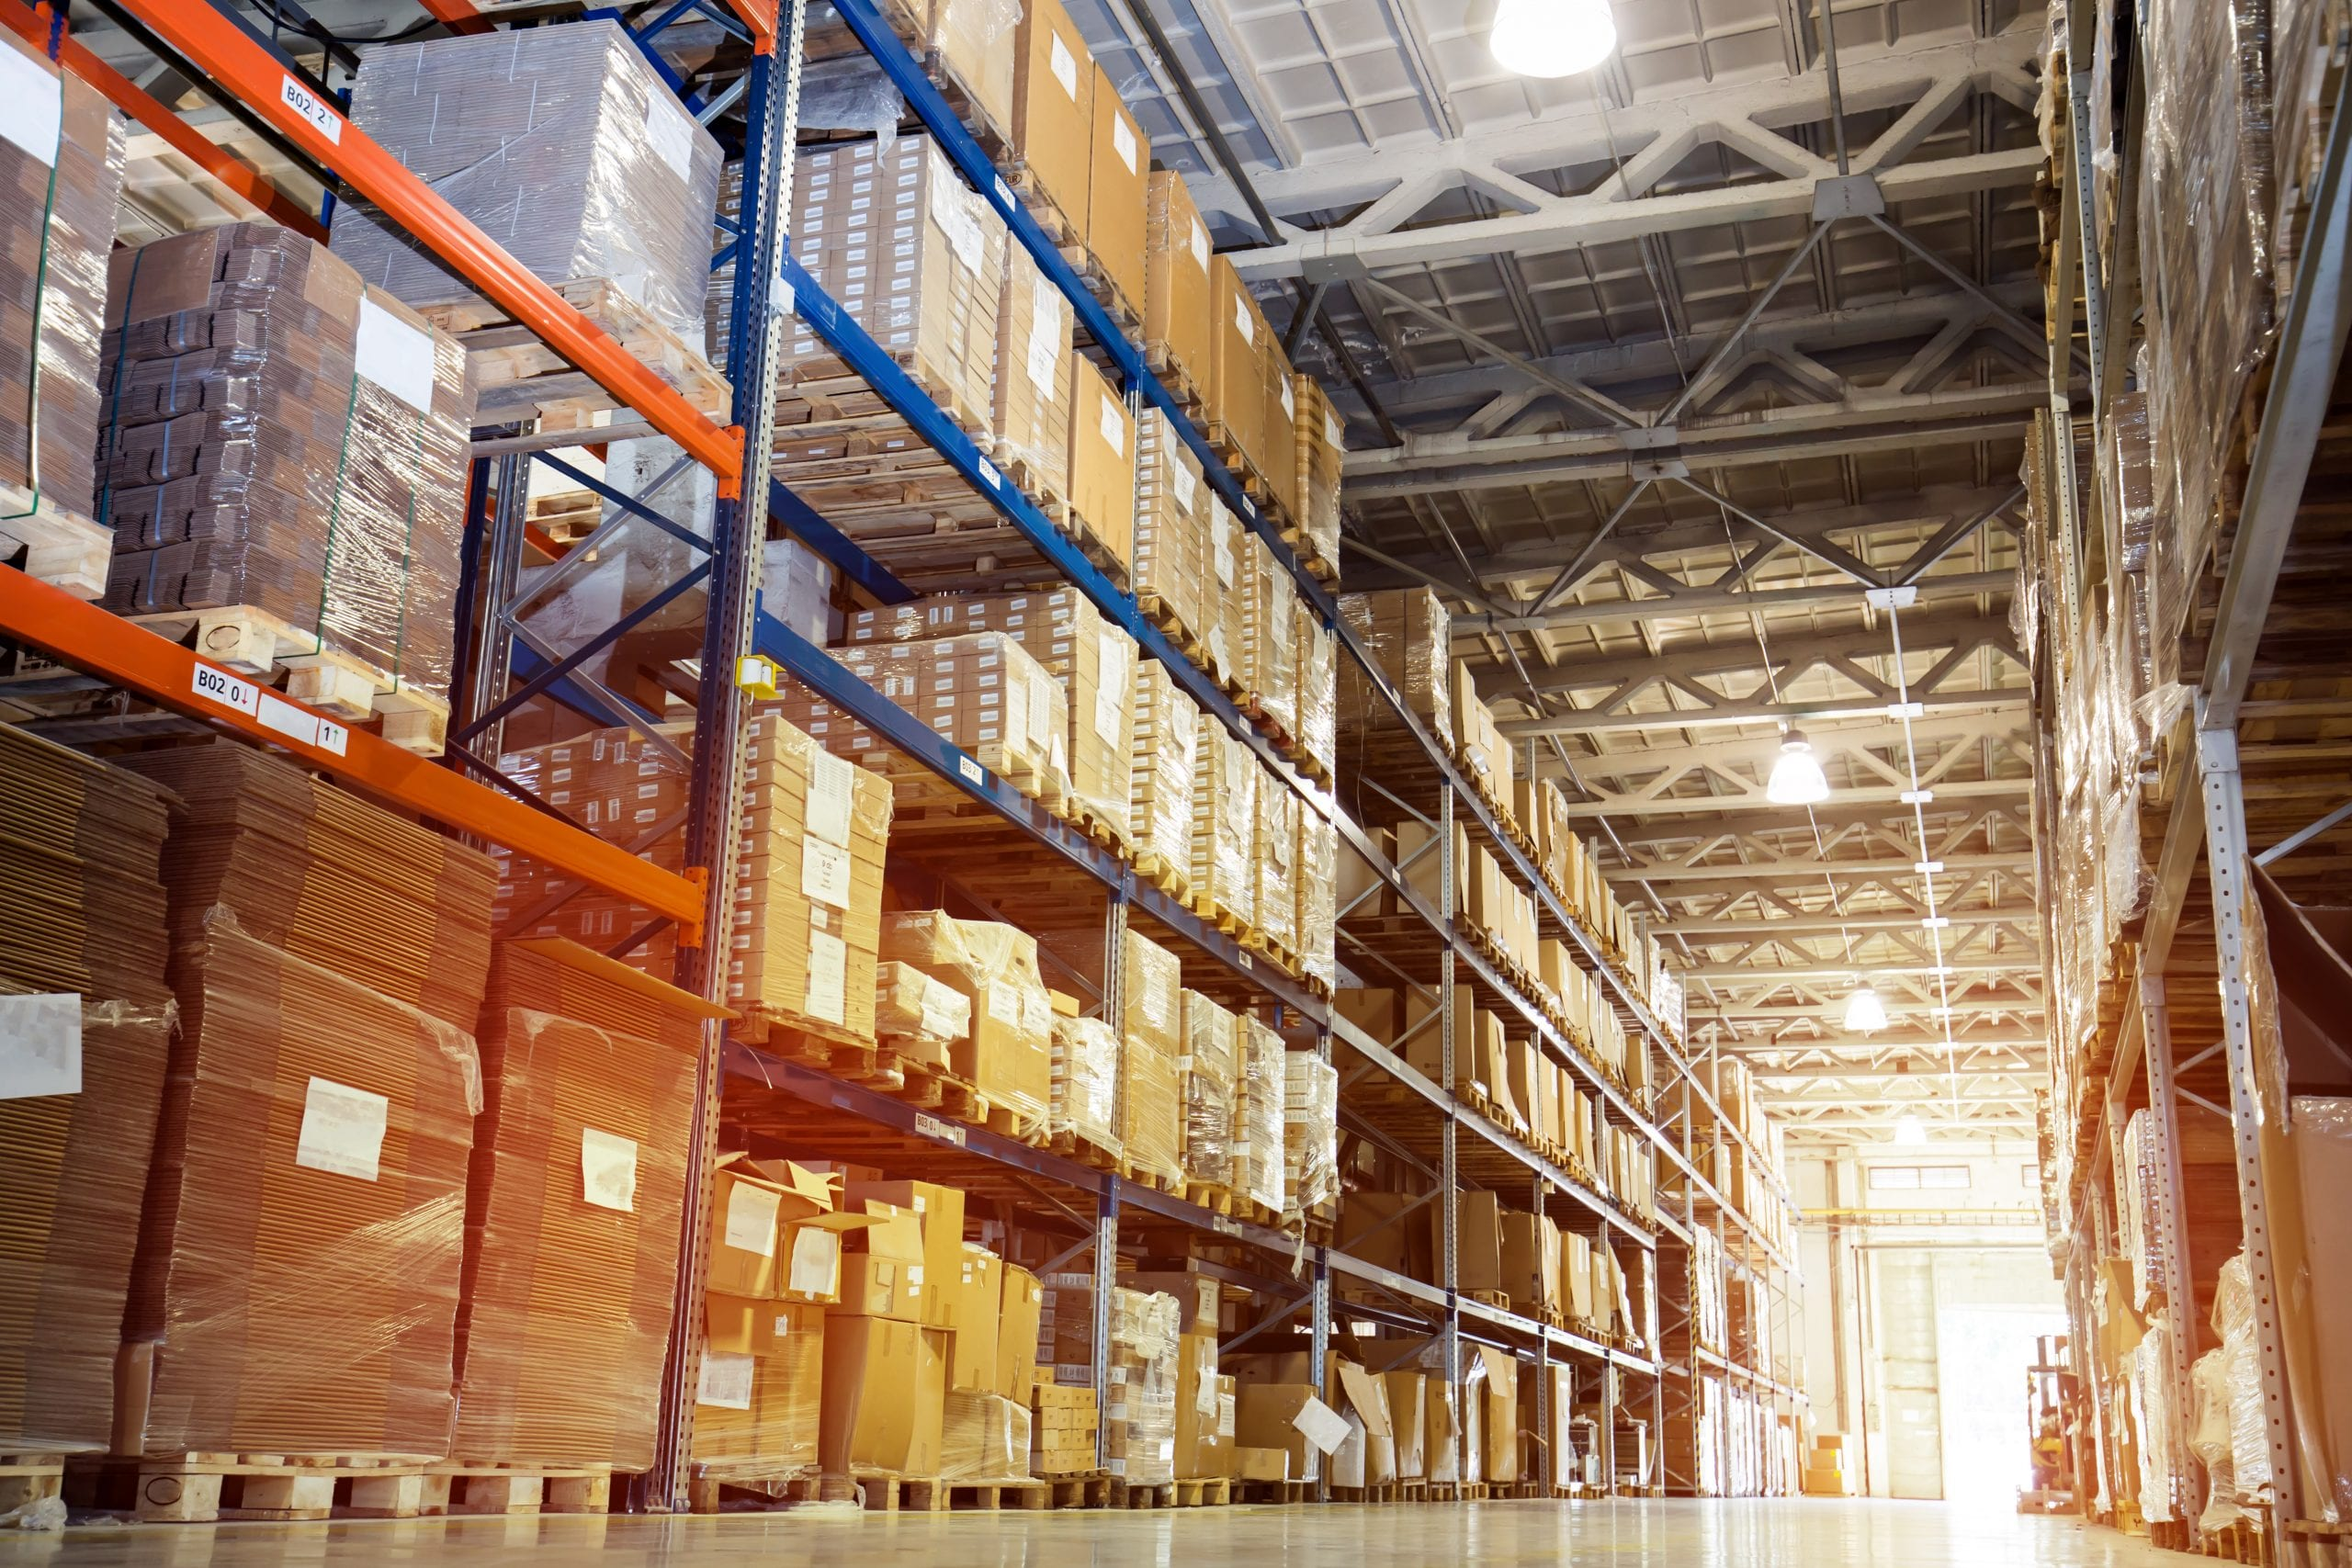 Warehouse with shelves full of storage brown boxes